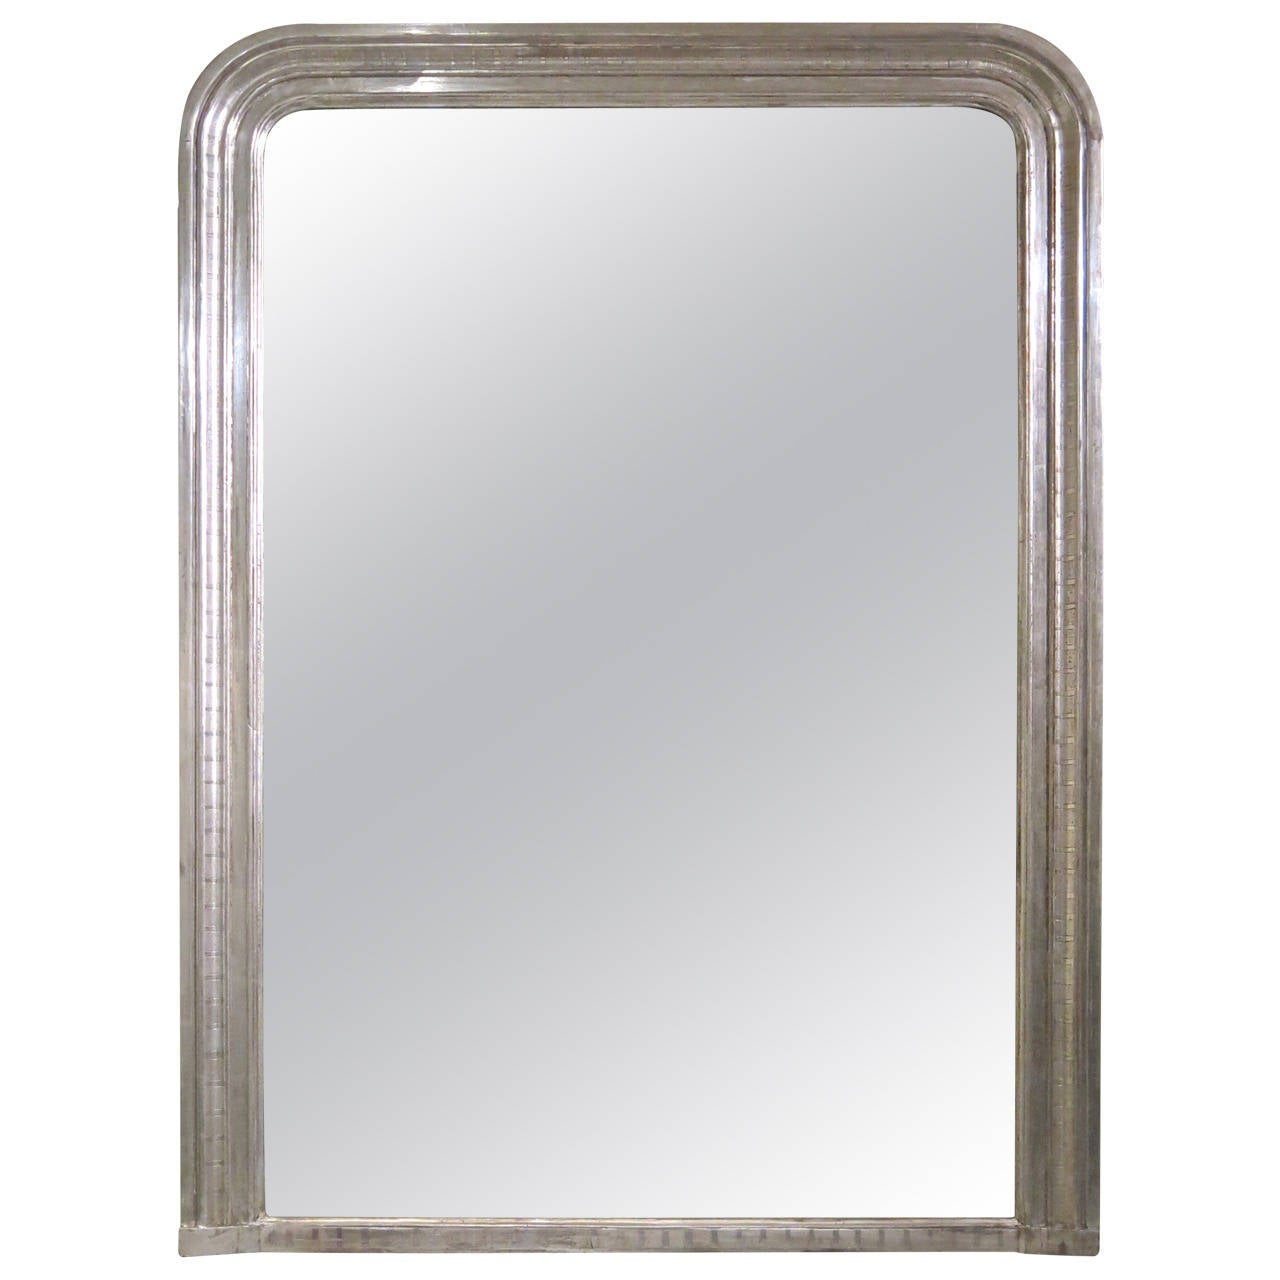 Antique french louis philippe silver leaf mirror at 1stdibs for Antique french mirror